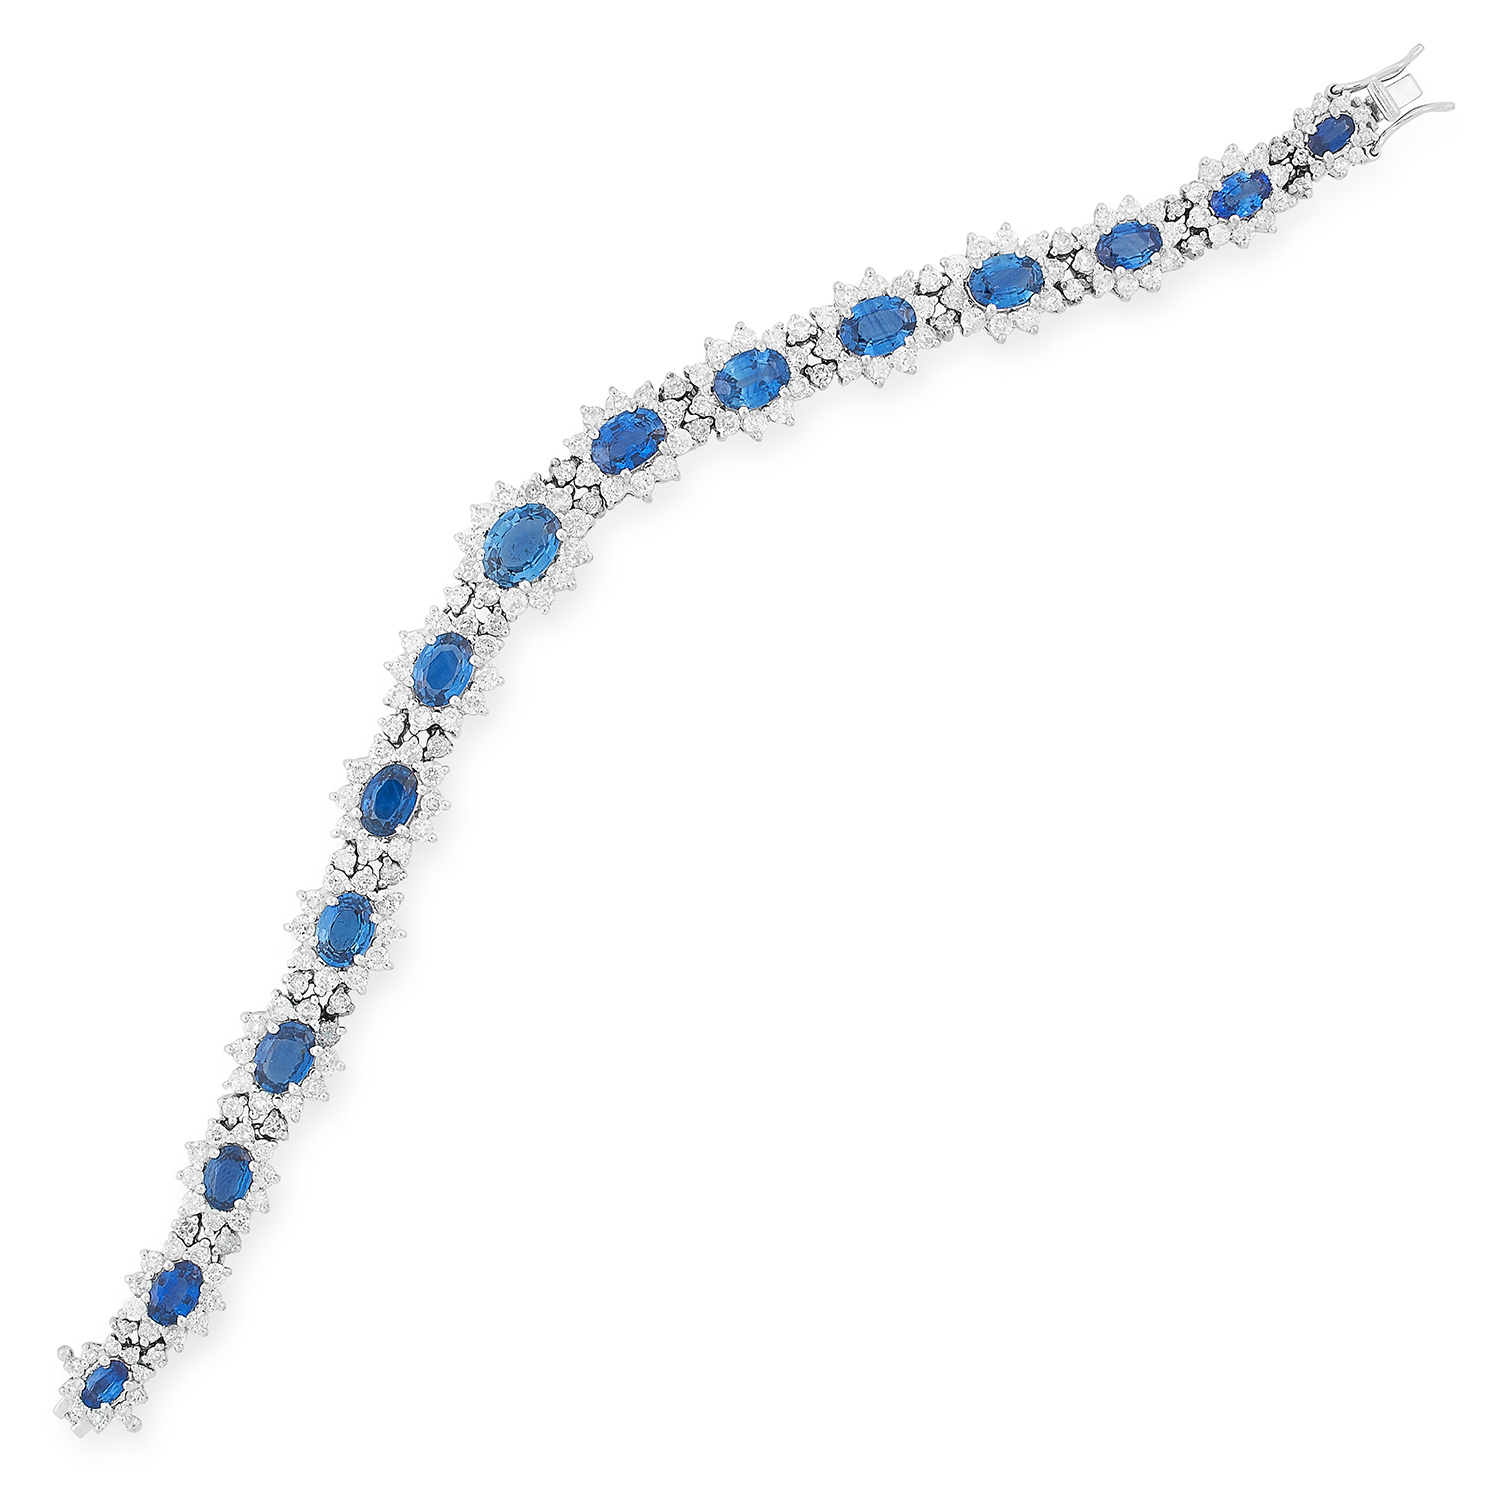 SAPPHIRE AND DIAMOND BRACELET set with approximately 9.16 carats of oval cut sapphires and 5.34